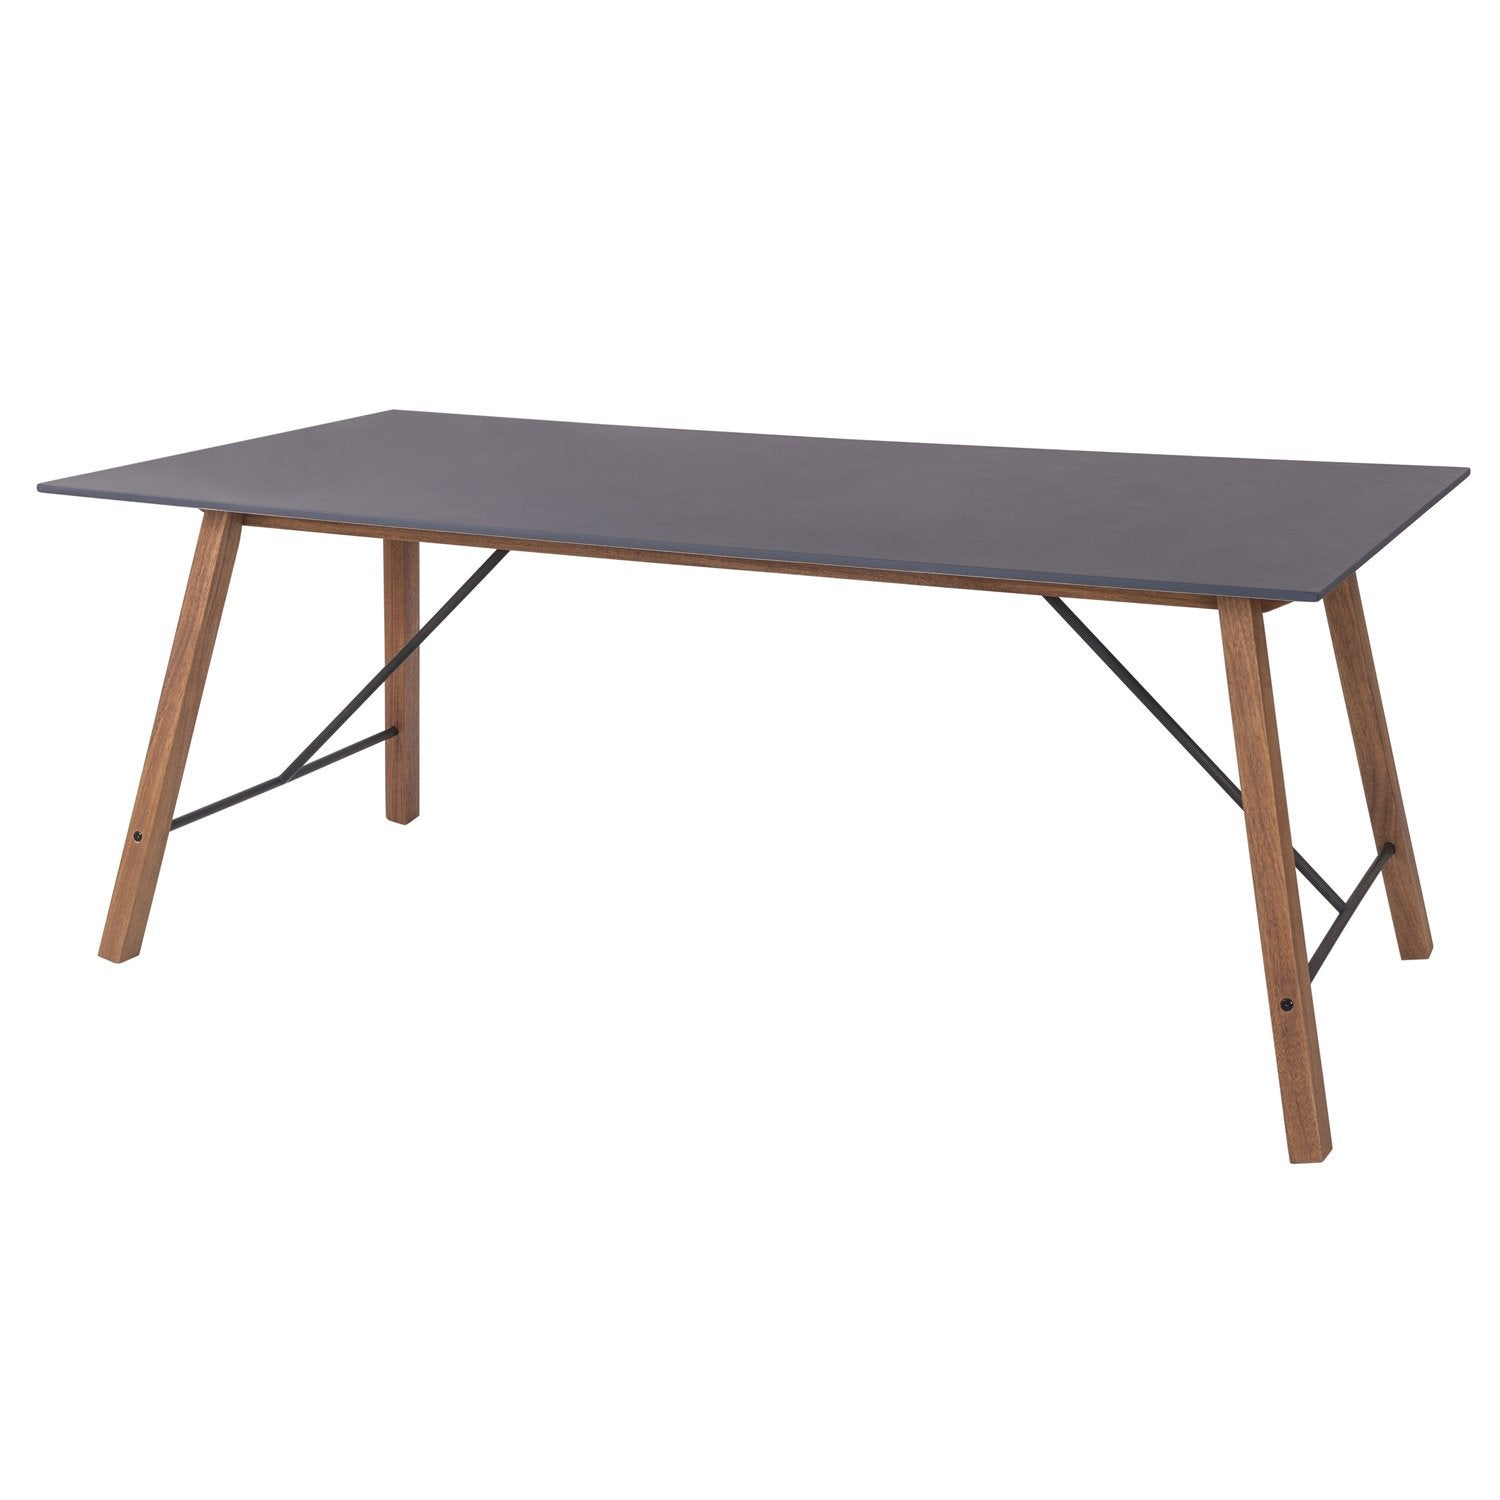 Table a tapisser leroy merlin - Table pliante leroy merlin ...